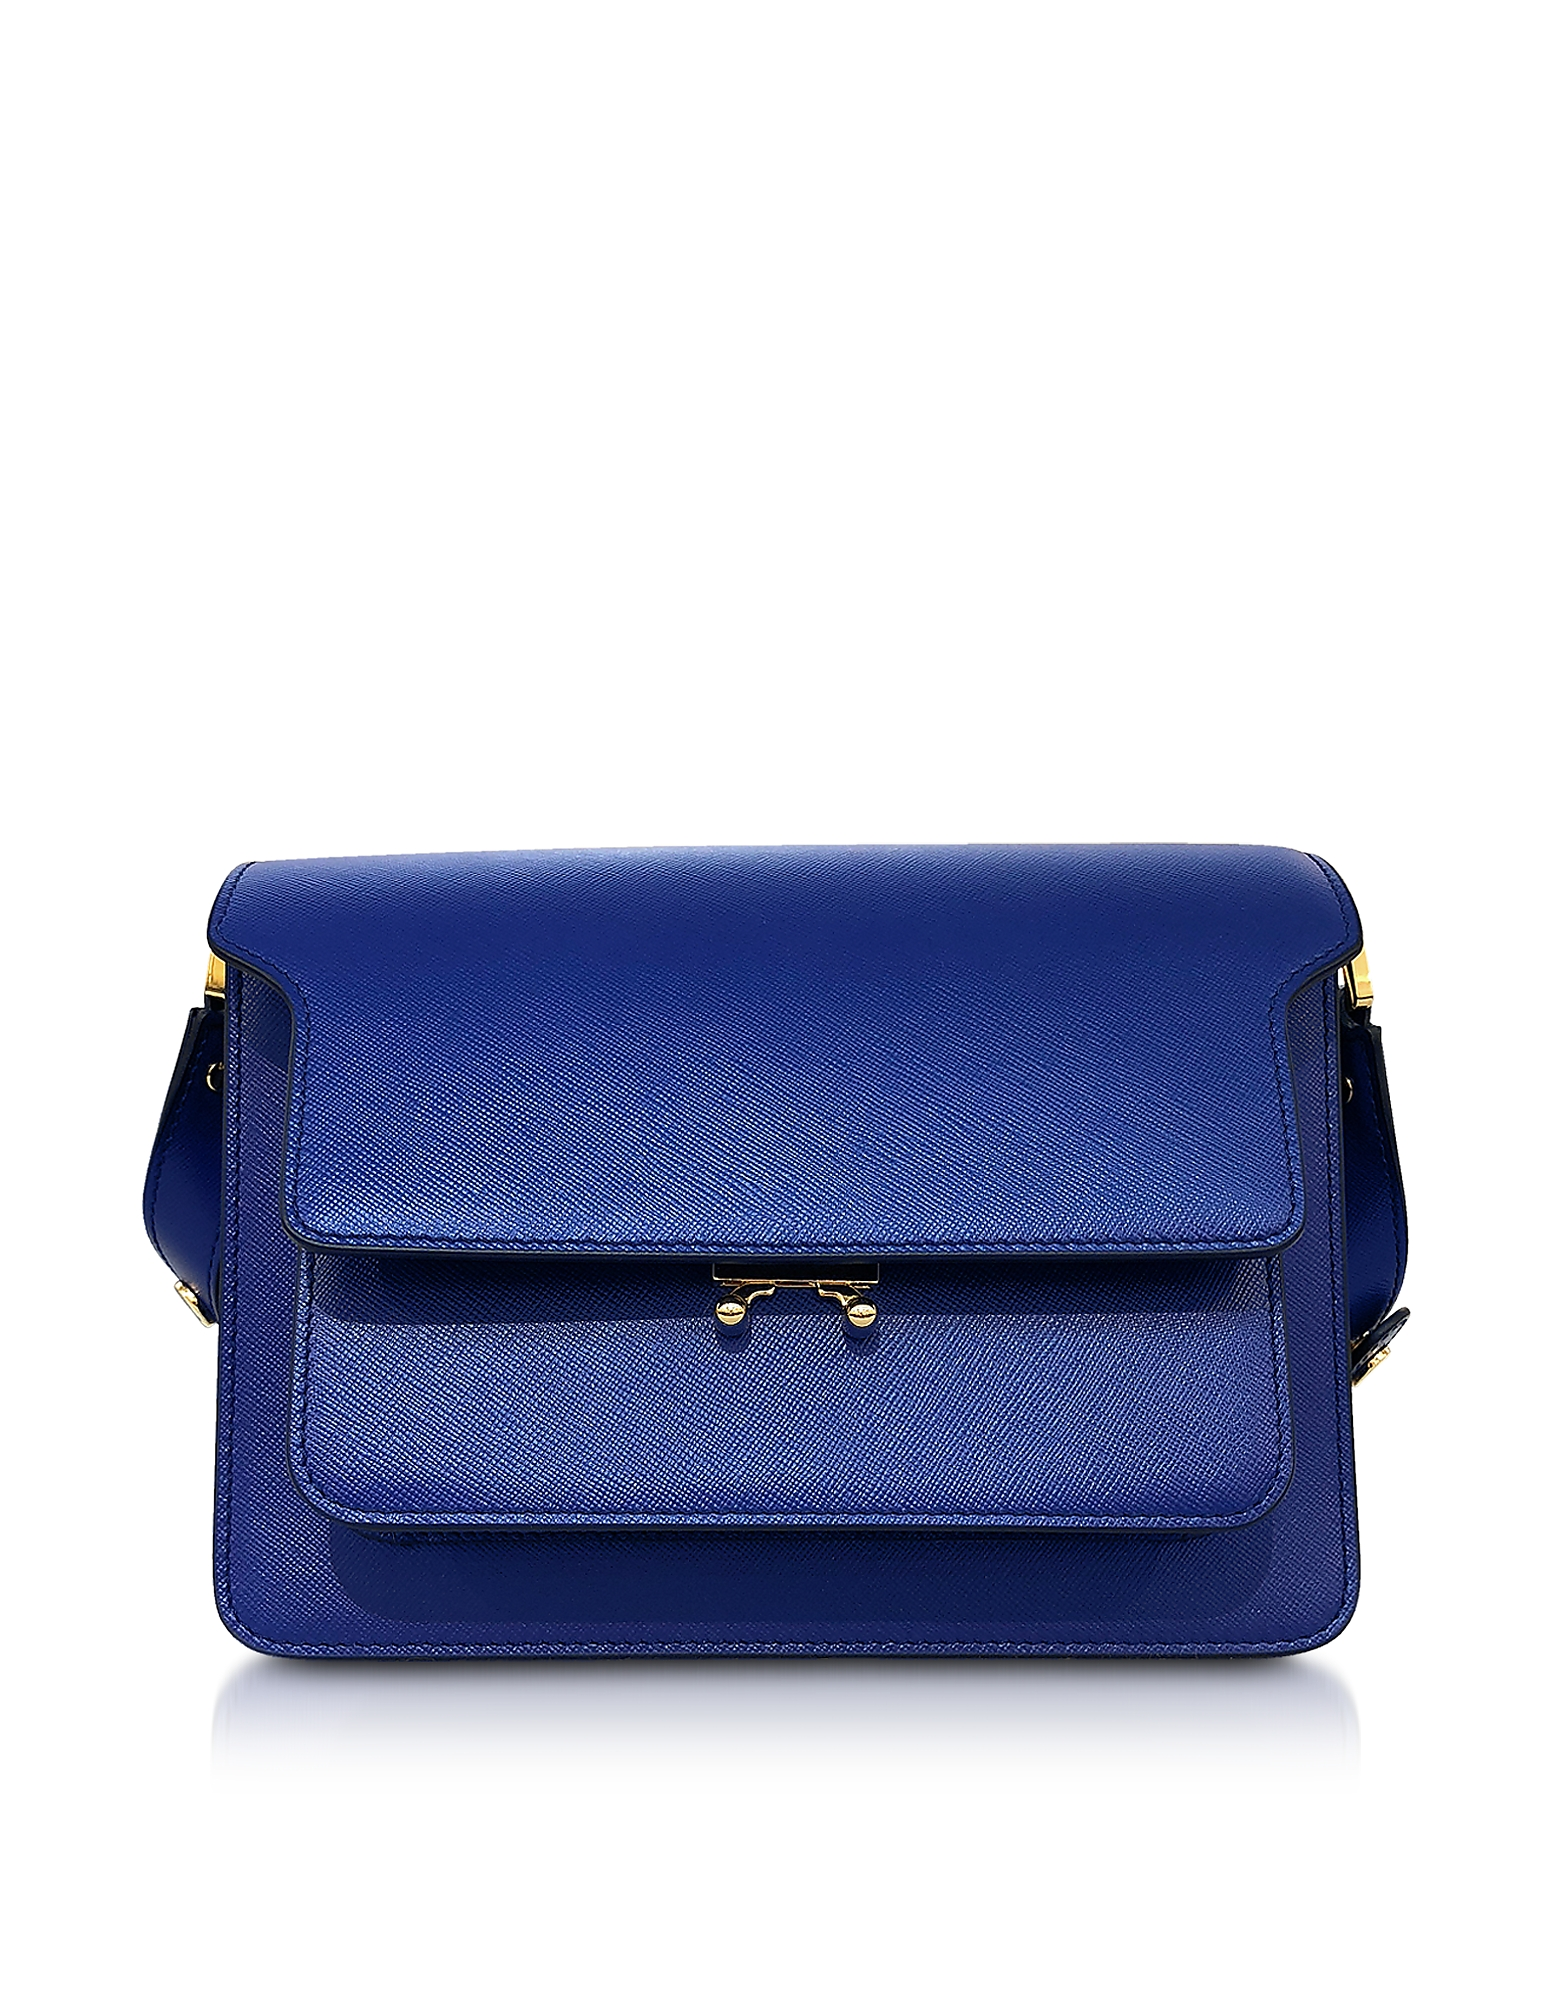 Image of Marni Designer Handbags, Bluette Saffiano Leather Trunk Bag